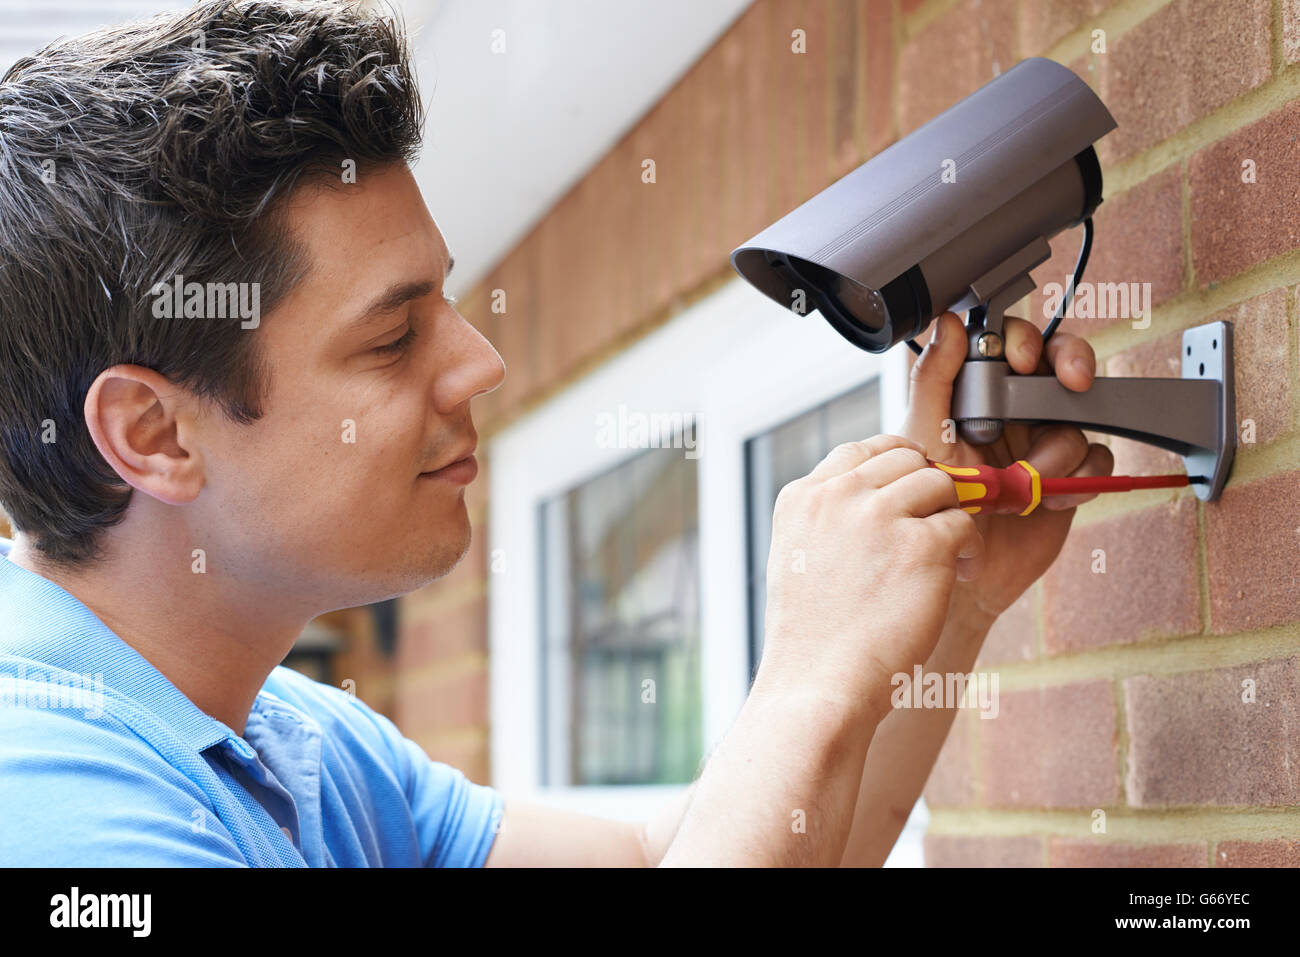 Security Consultant Fitting Security Camera To House Wall - Stock Image